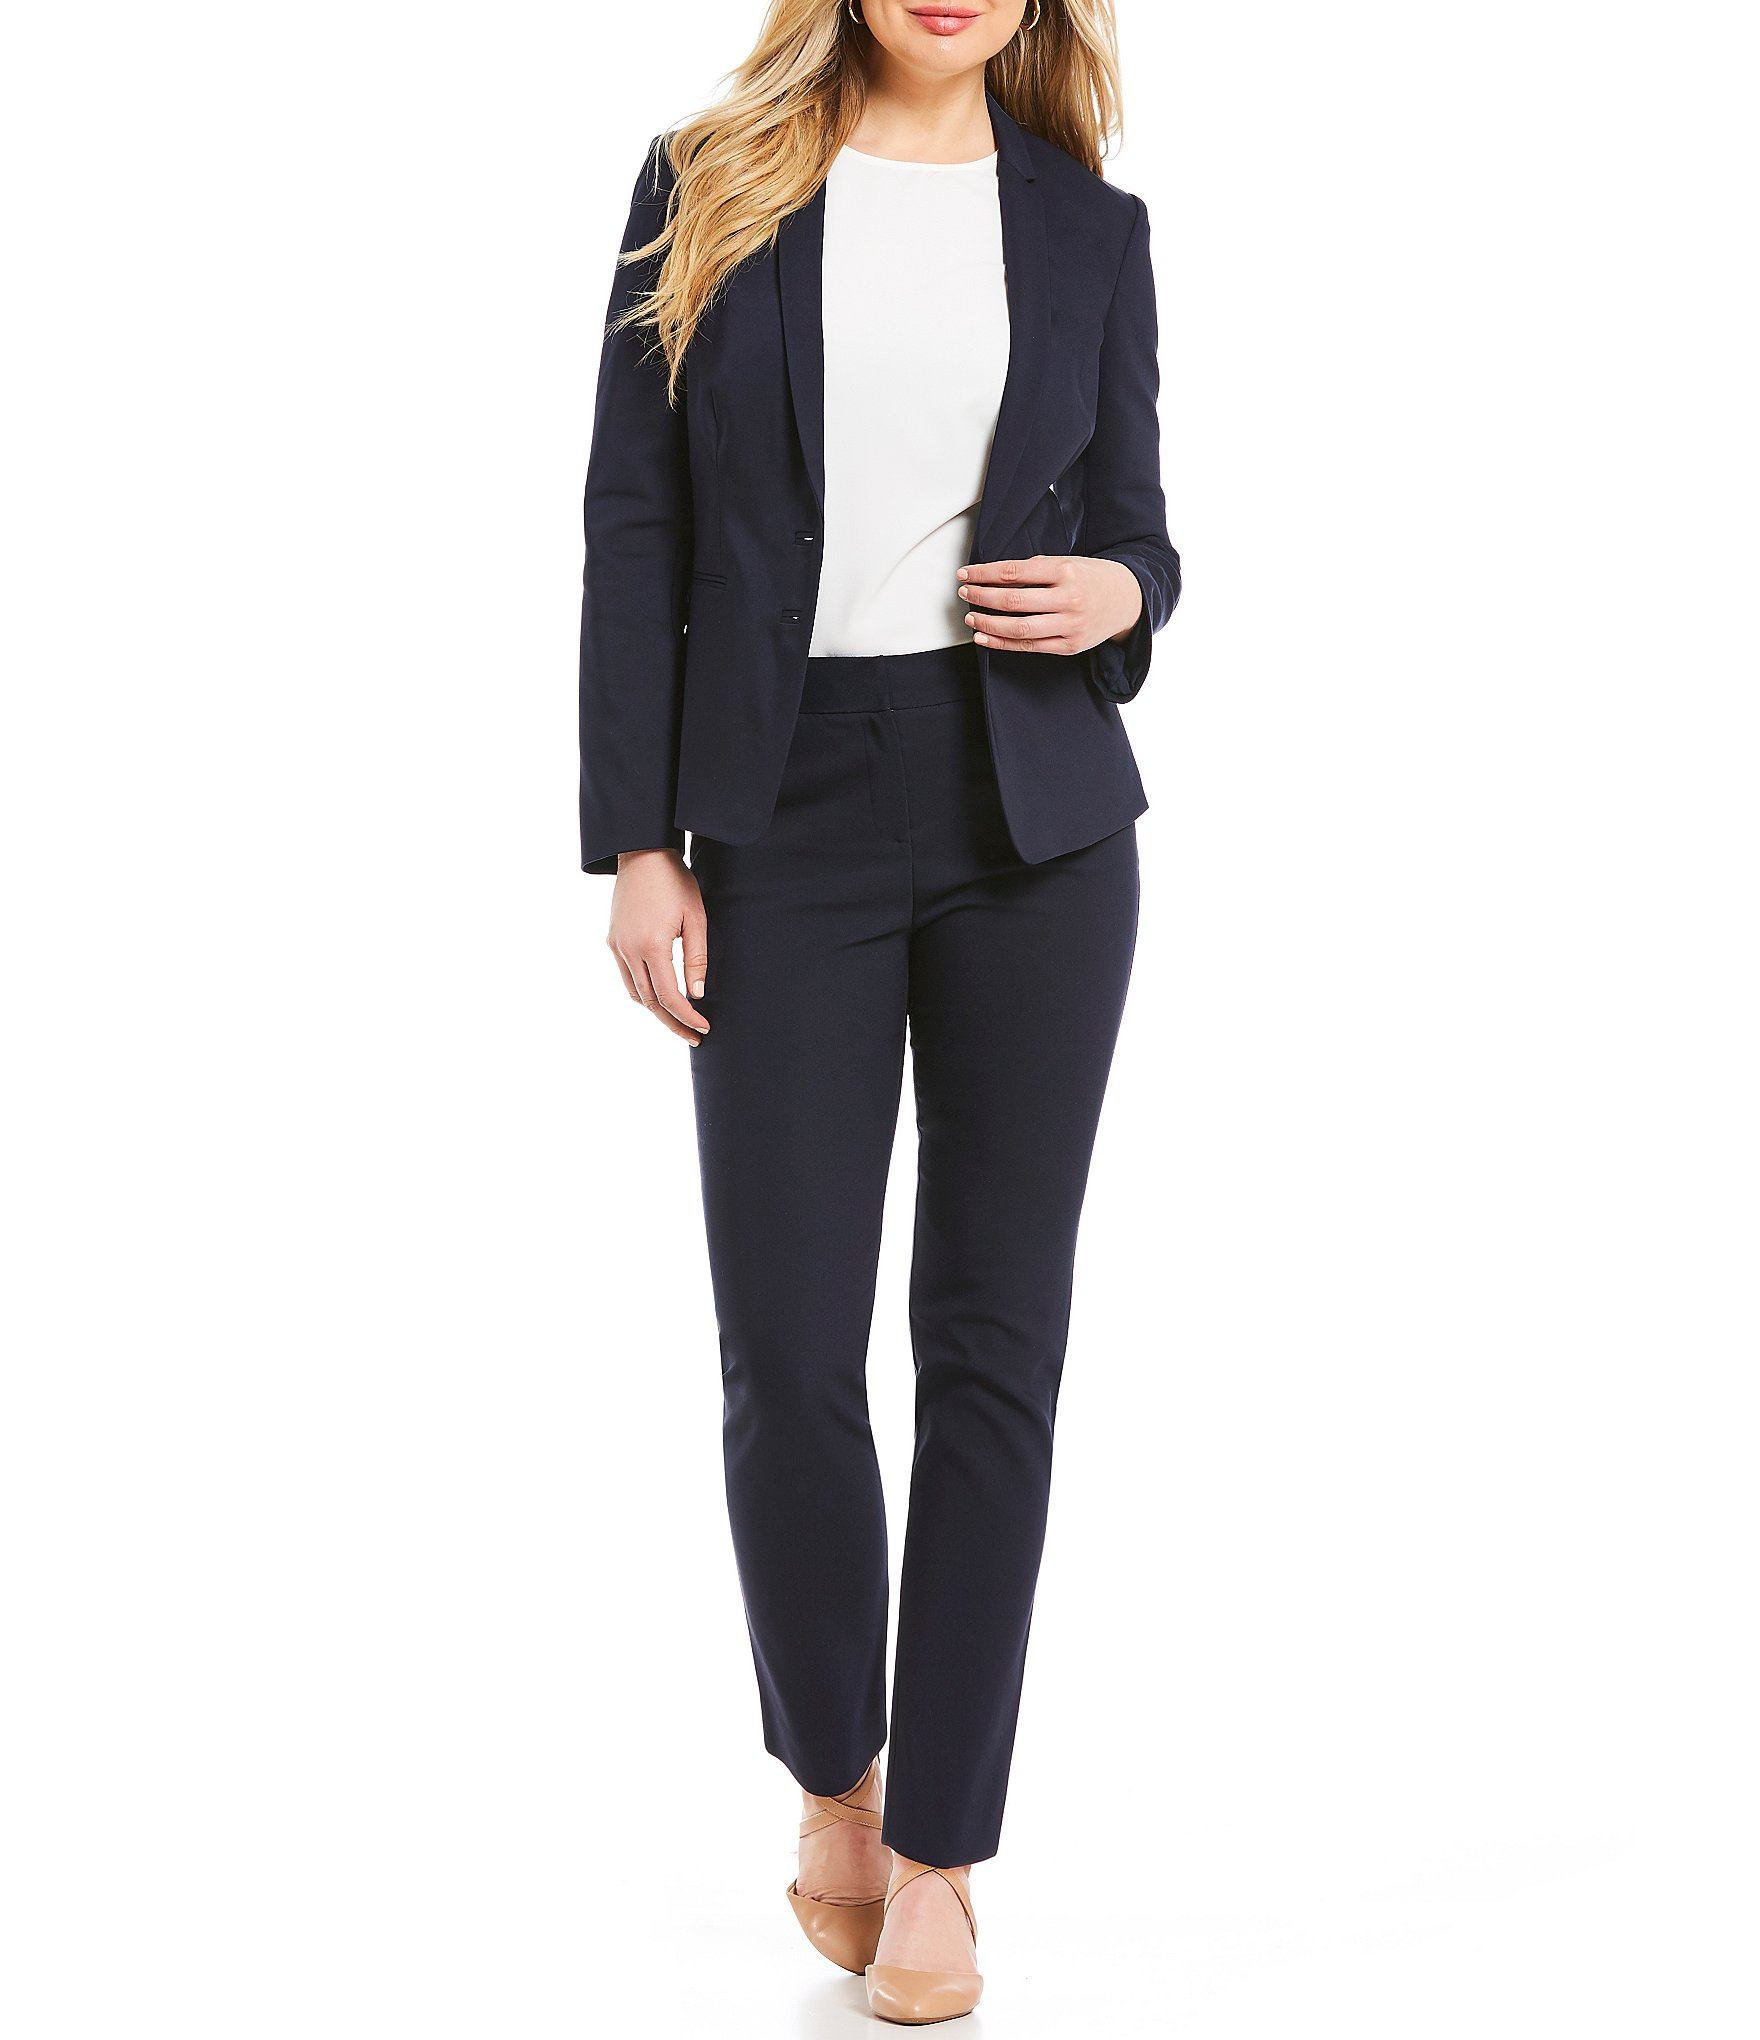 Women S Pant Suits Women S Clothing Apparel Dillards Com